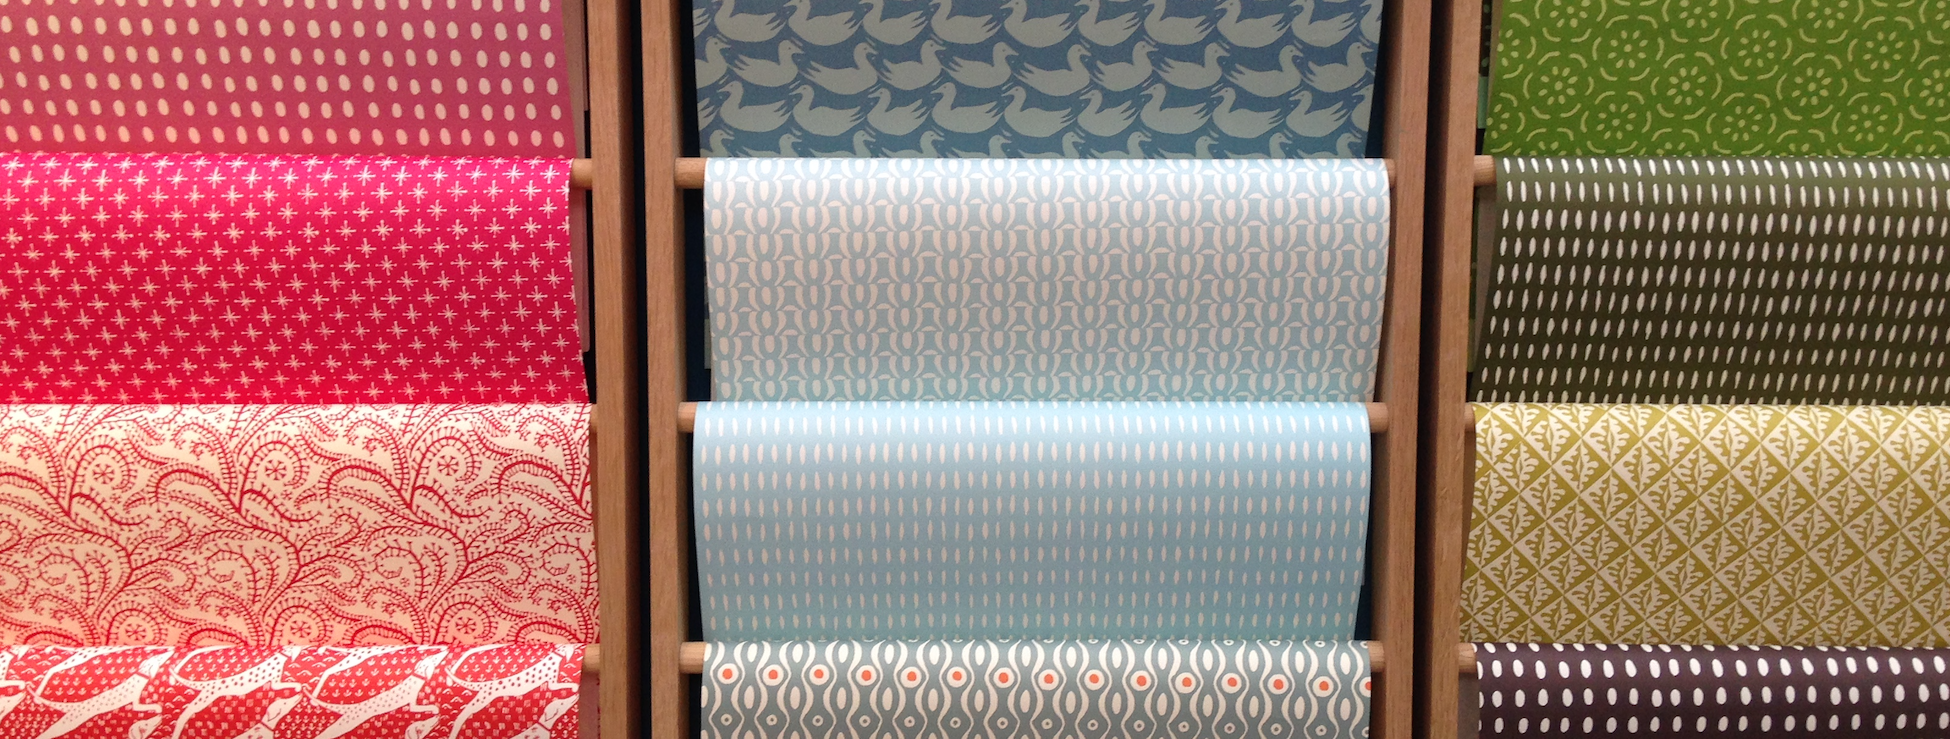 Cambridge Imprint Patterned Papers